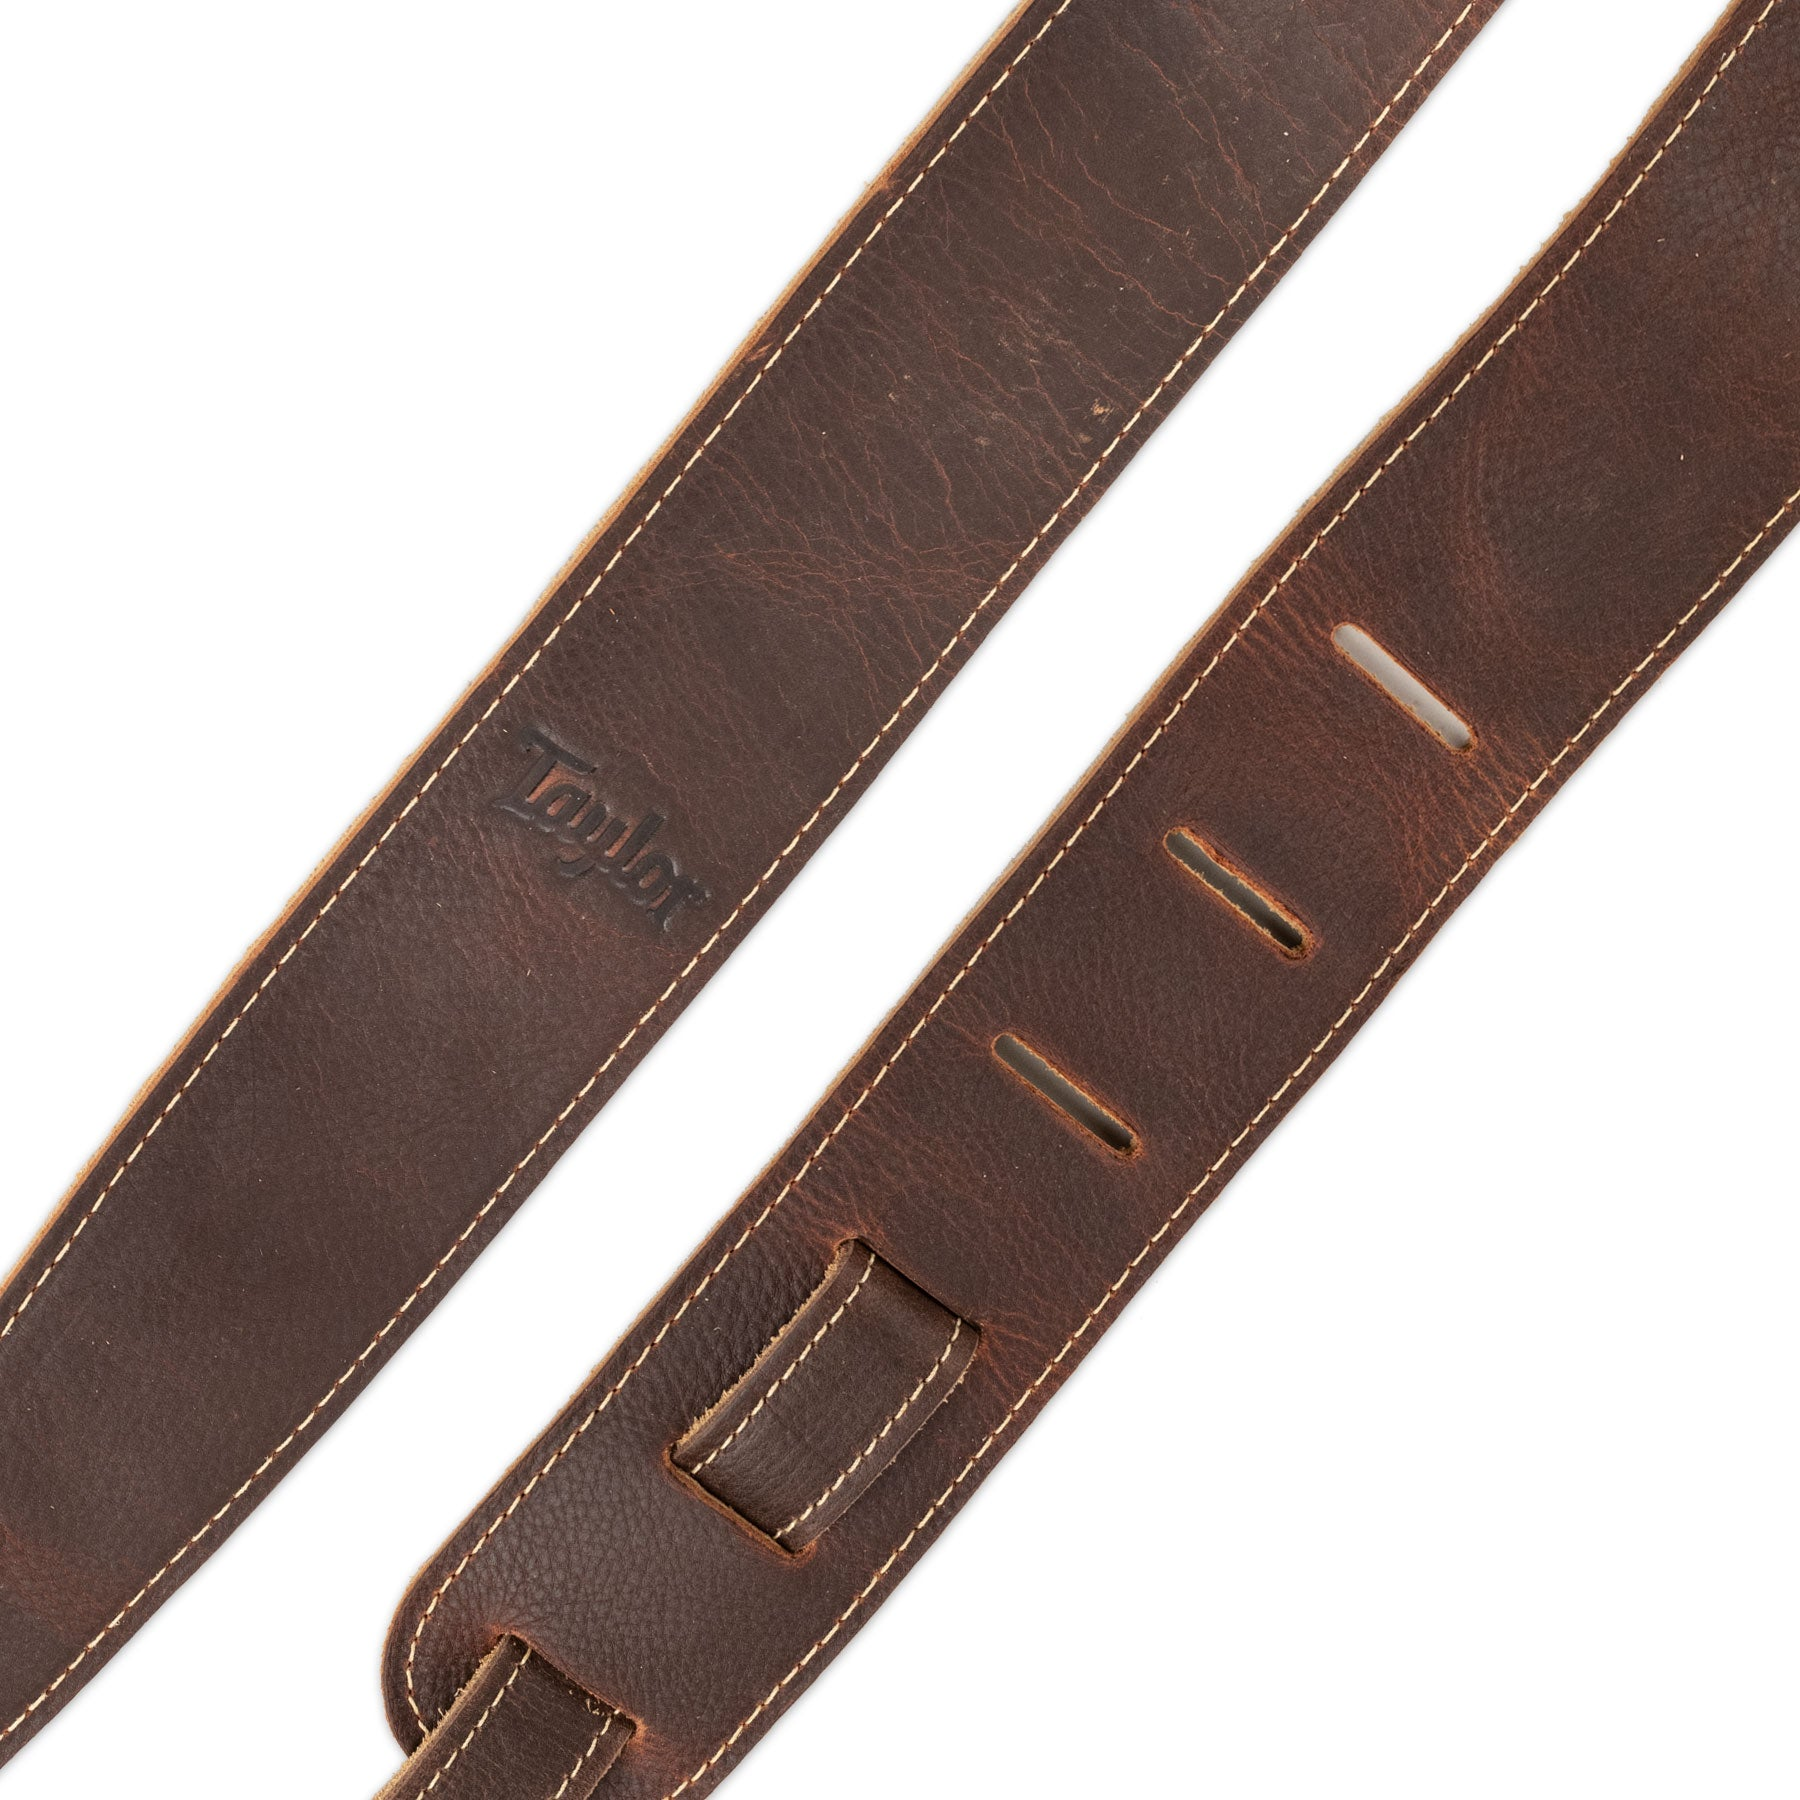 "TAYLOR TL250-05 2.5"" BROWN LEATHER/SUEDE BACK GUITAR STRAP"